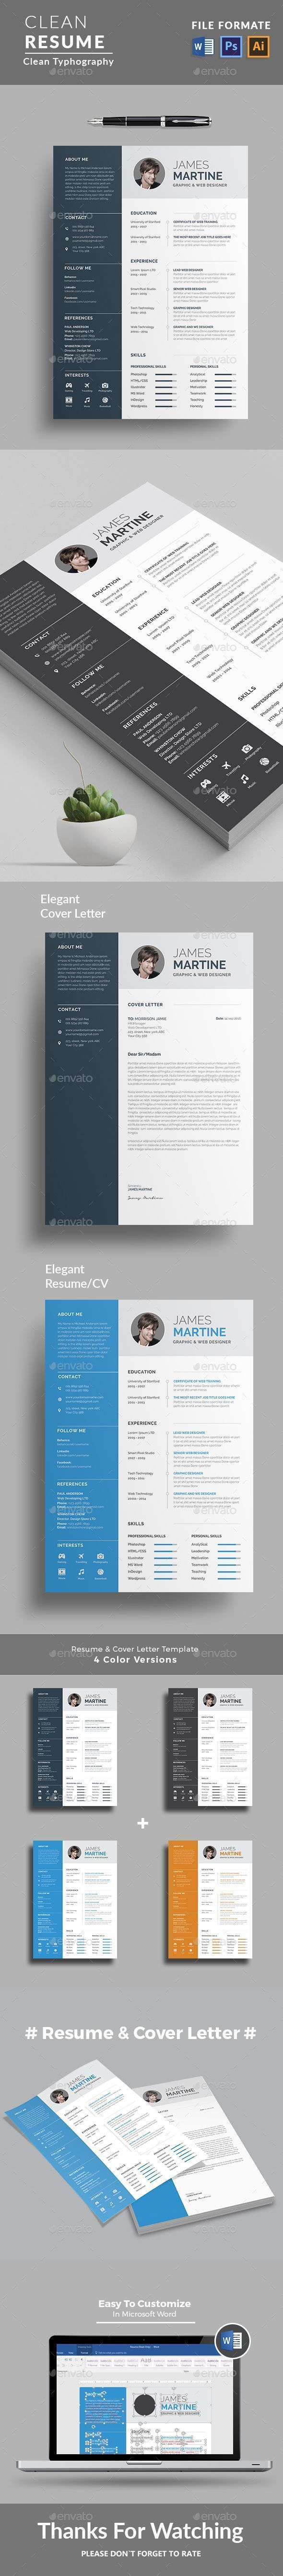 Chronological Resume Samples%0A This is Resume Templates    u   c Resume Templates  u   d is the super clean The  flexible page designs are easy to use and customize  modern and  professional Resume